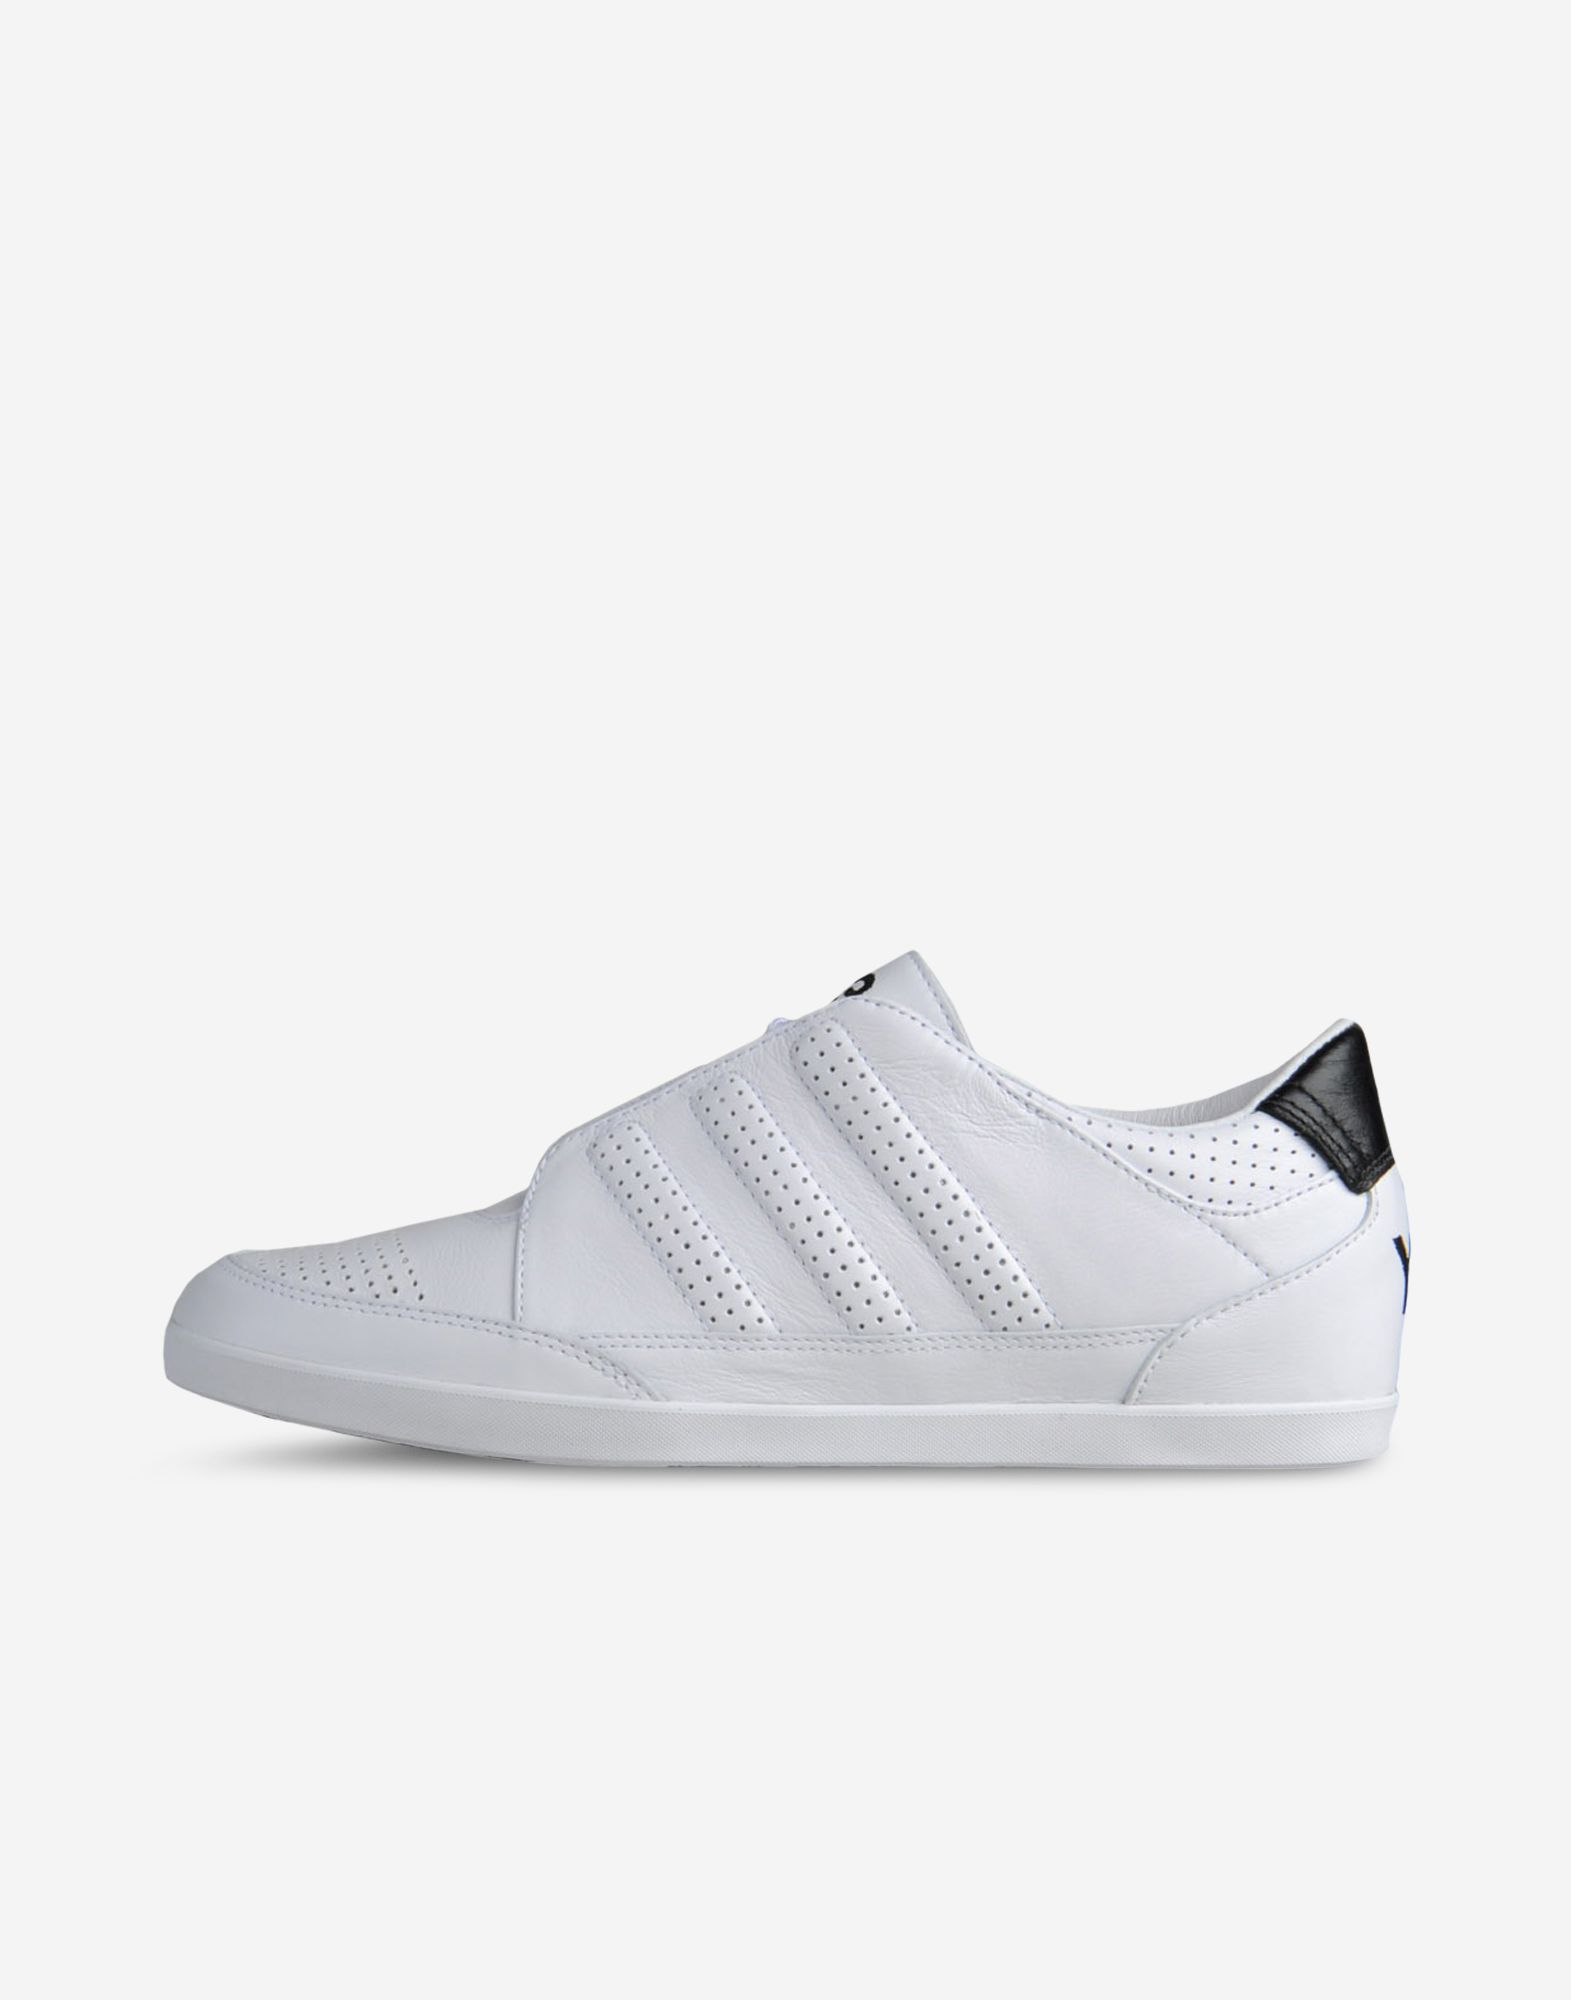 a5be21a00 ... Y-3 Y-3 Honja Classic Sneakers Man f ...